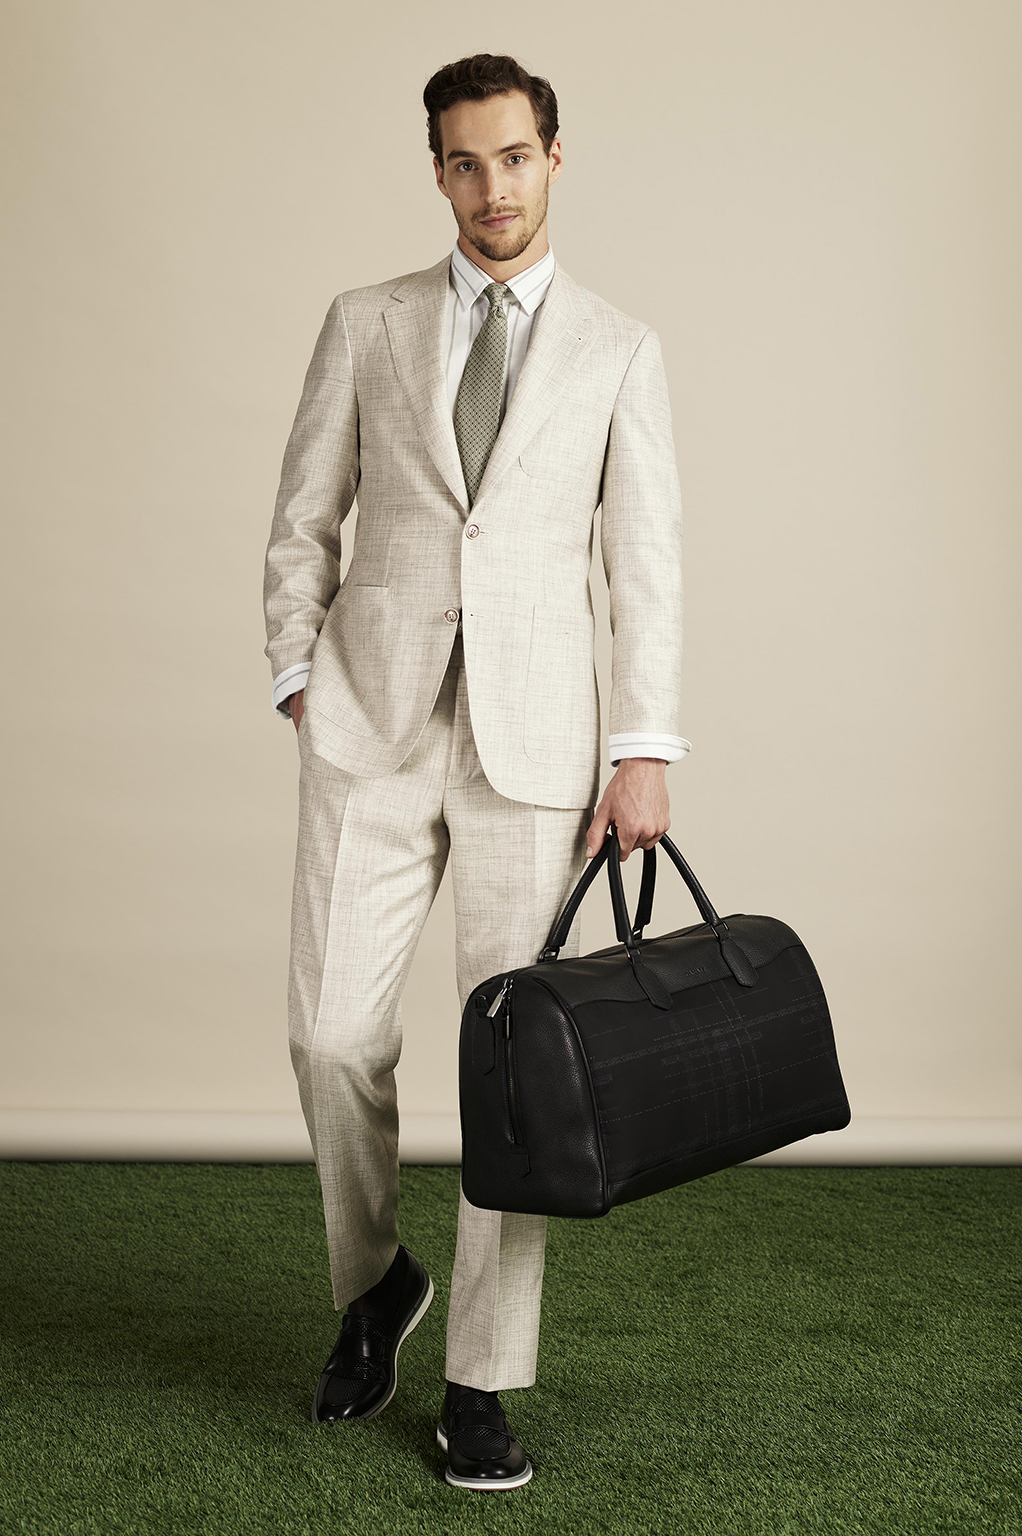 Canali Spring/Summer 2020 collection